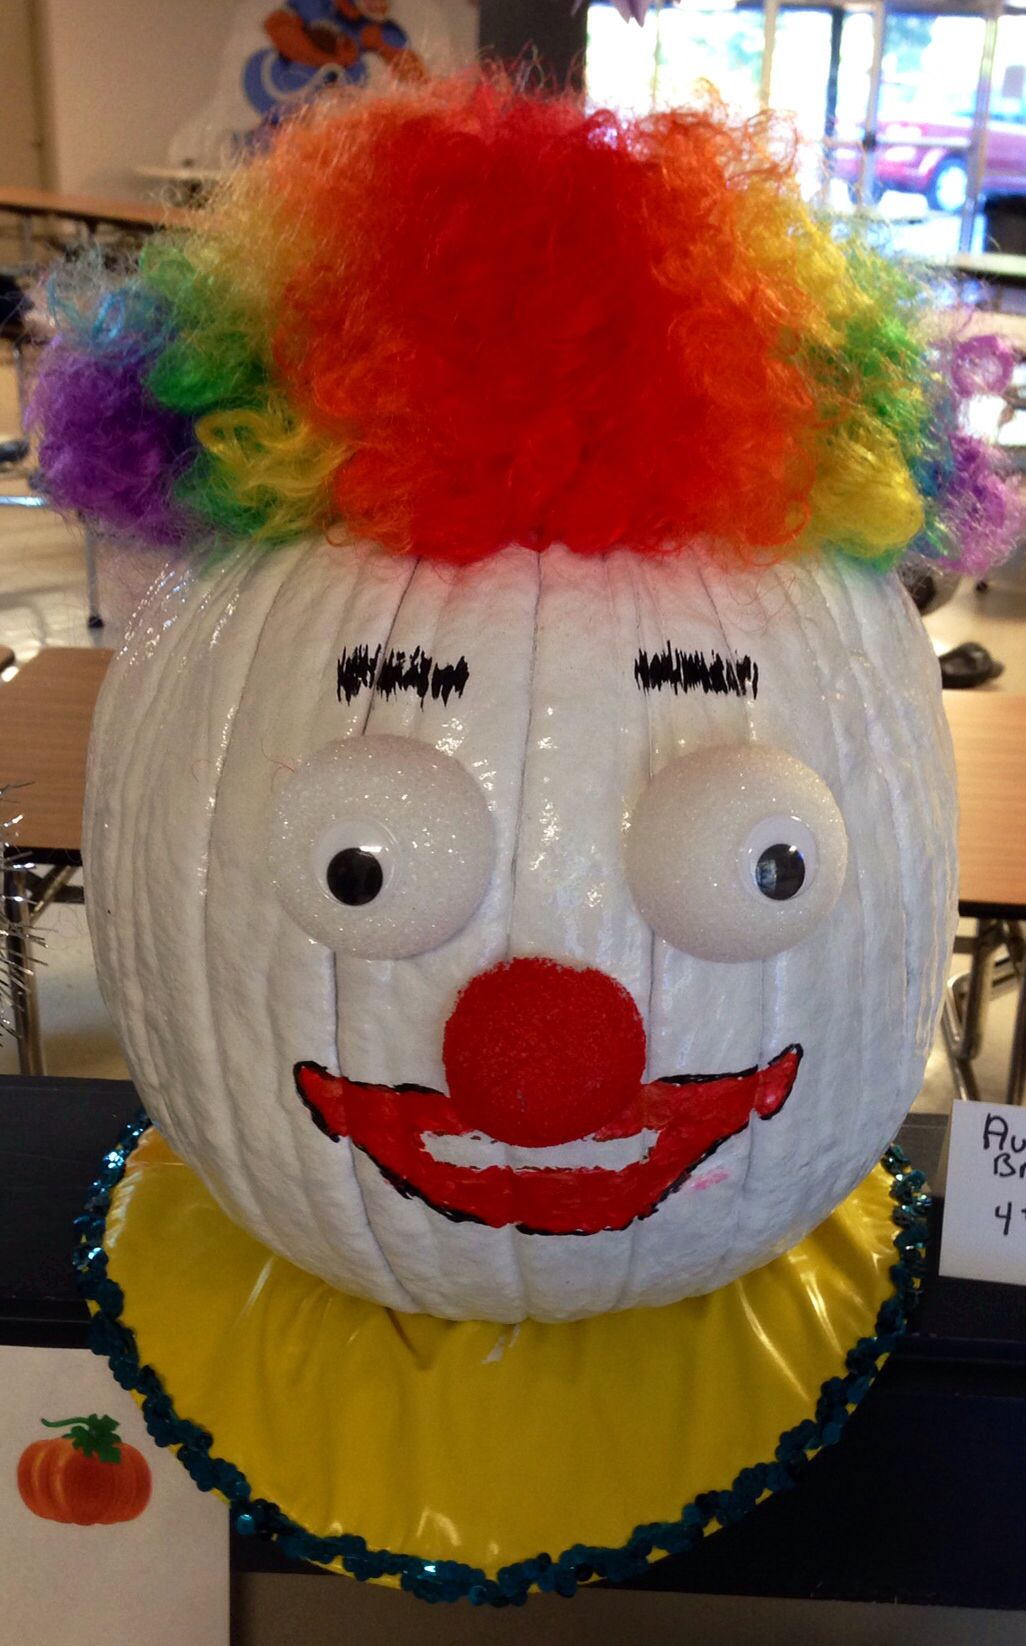 School pumpkin decorating contest. Clowns are scary but this